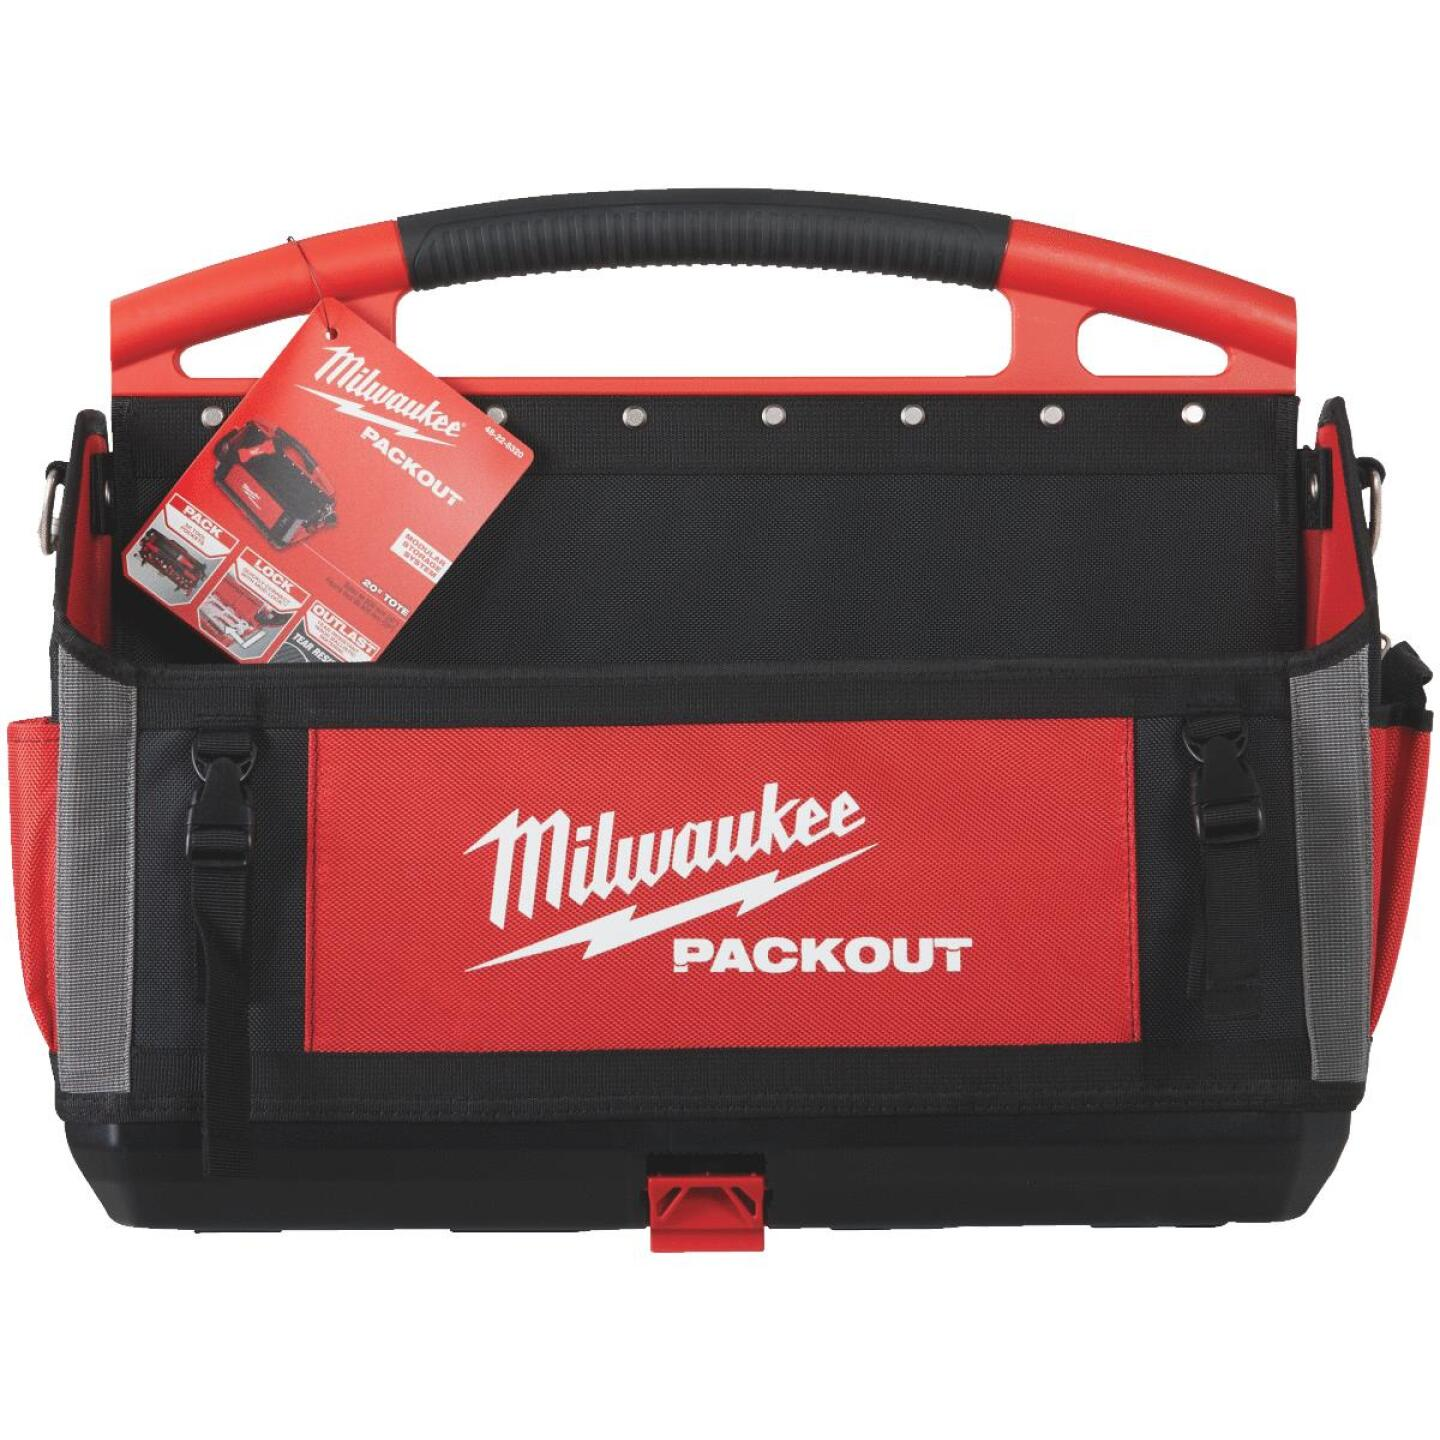 Milwaukee PACKOUT 32-Pocket 20 In. Tool Tote Image 2